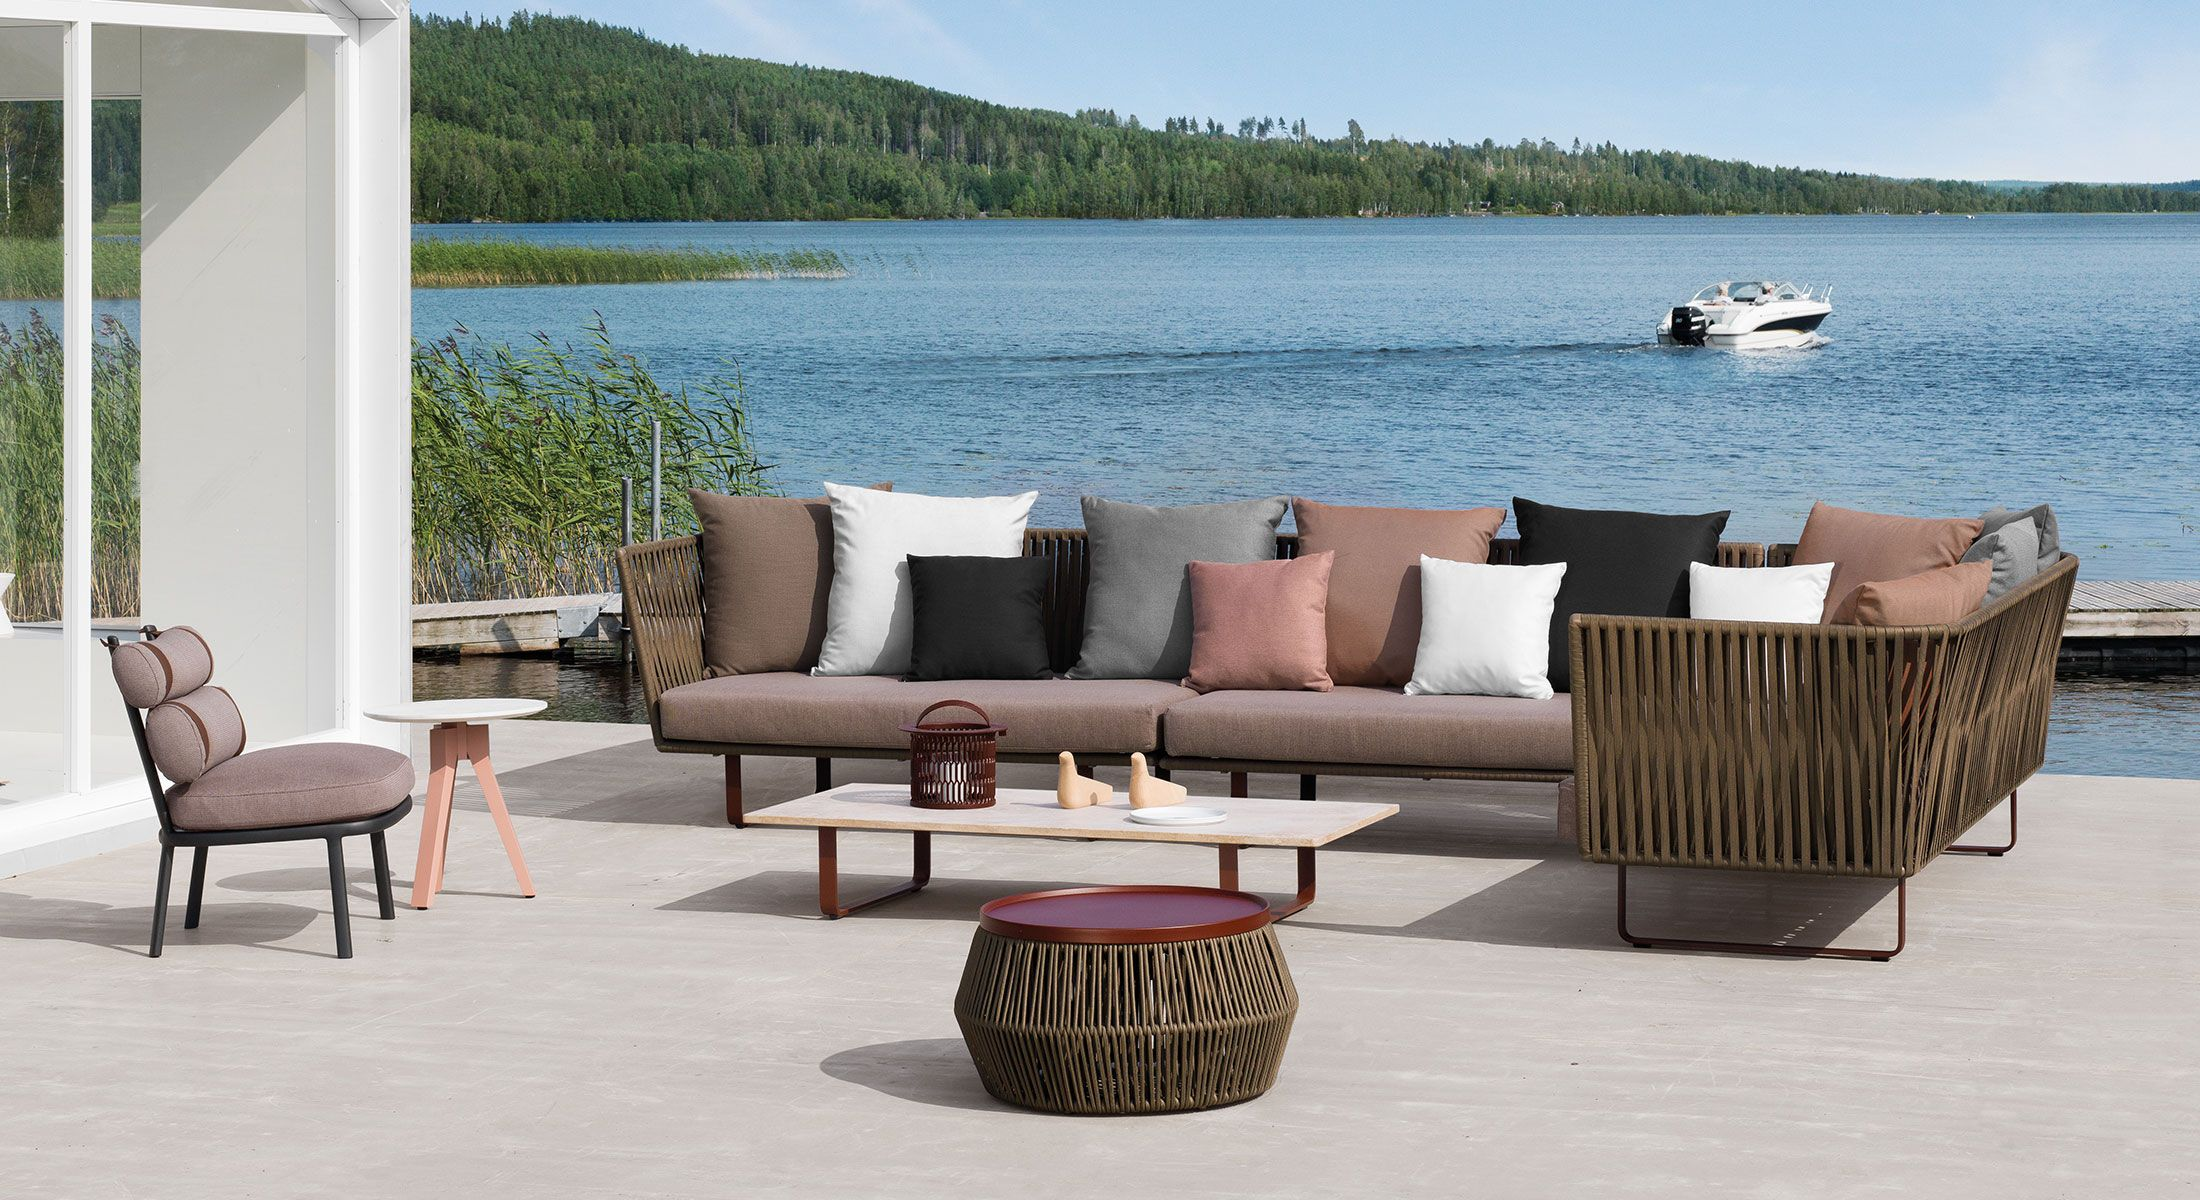 KETTAL | Muebles De Diseño De Exterior | MOBILIARIO | Pinterest | Outdoor  Lounge, Country Houses And Outdoor Spaces